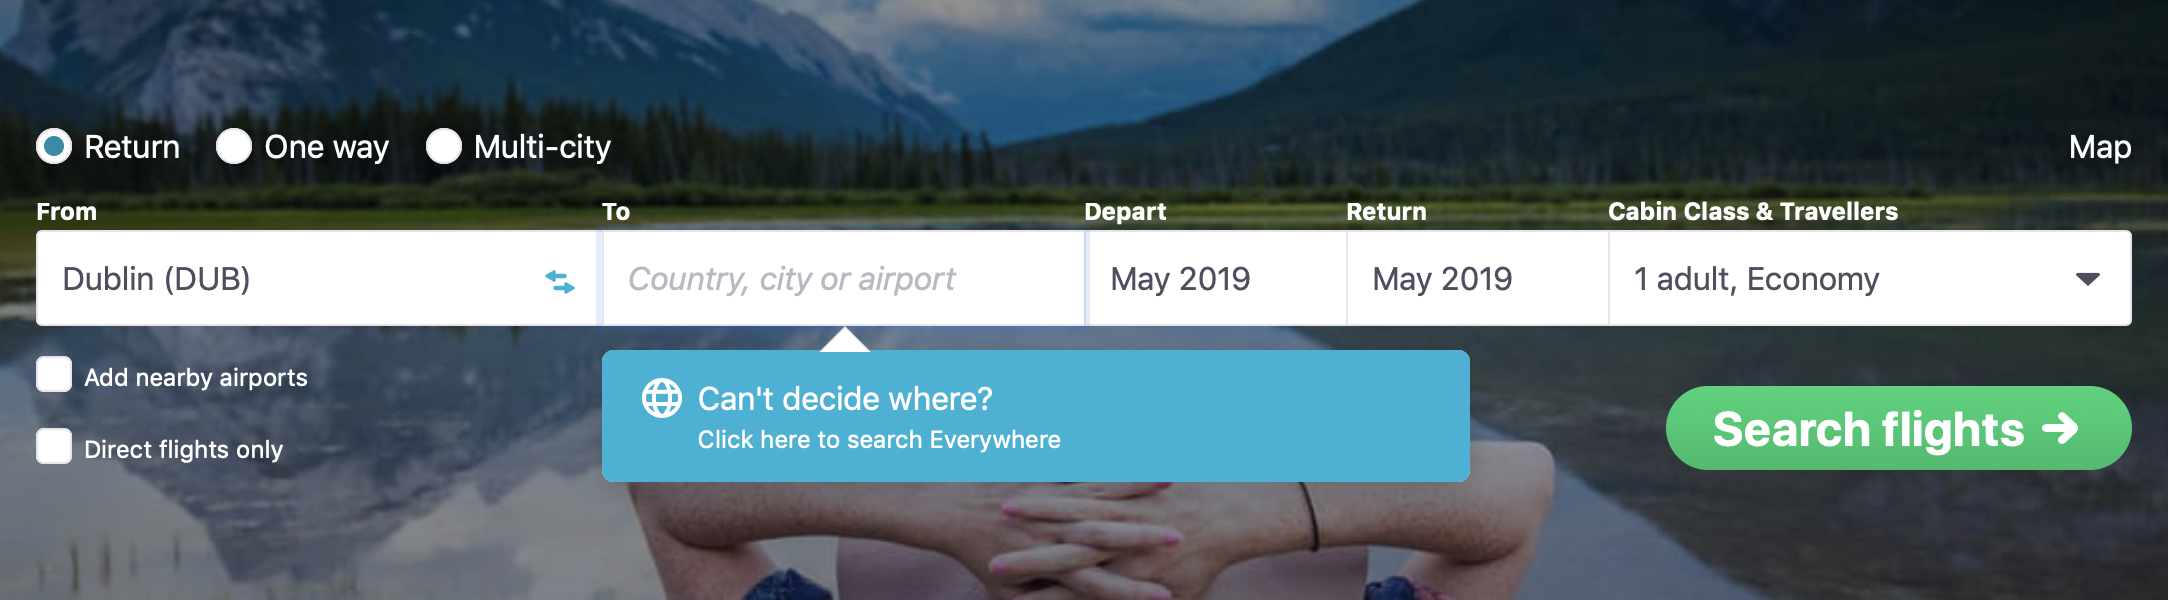 Selecting flights to Everywhere